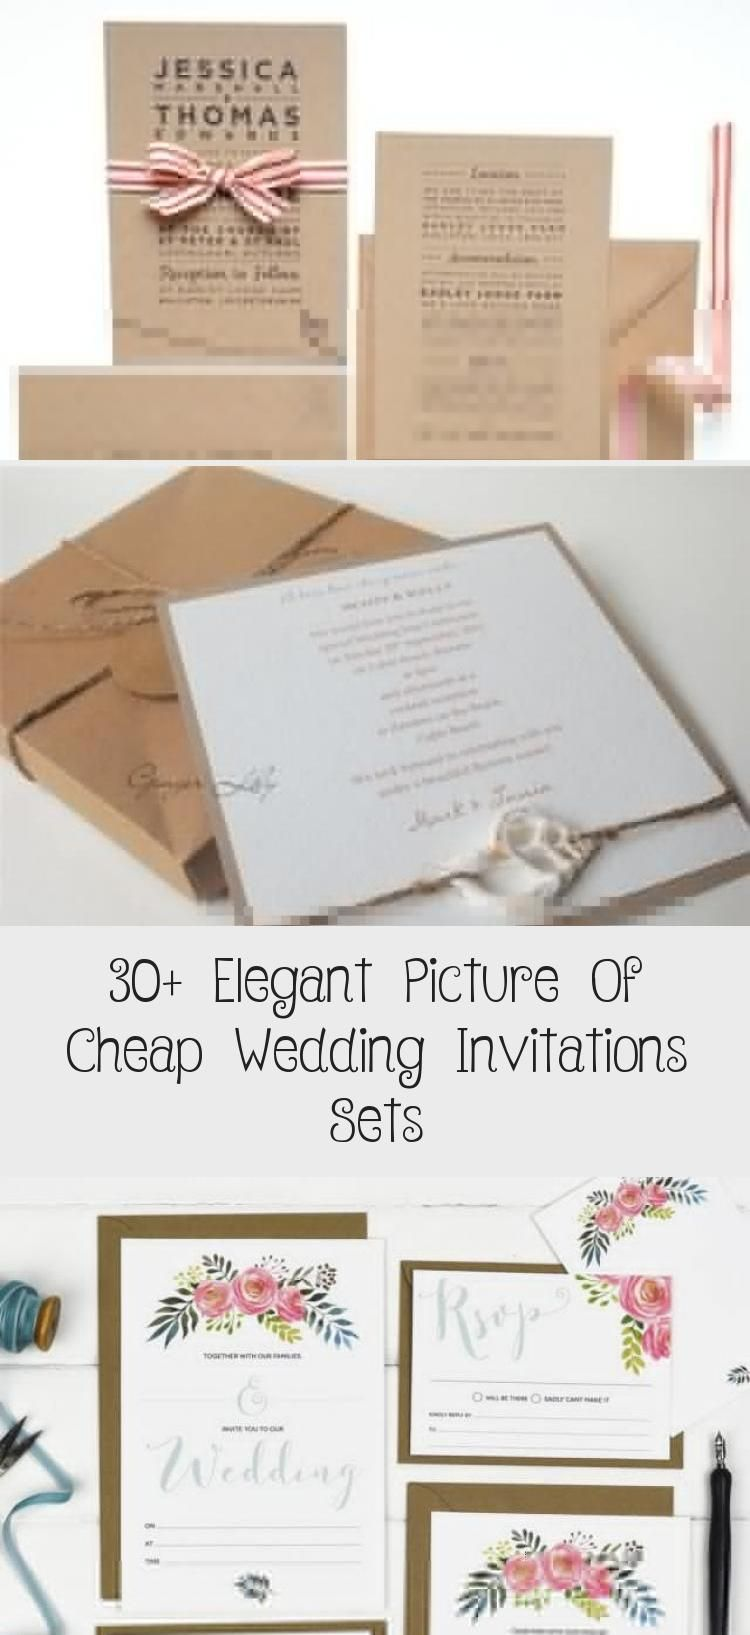 30 Elegant Picture Of Cheap Wedding Invitations Sets Cheap Wedding Invitations Inexpensive Wedding Invitations Wedding Invitation Sets